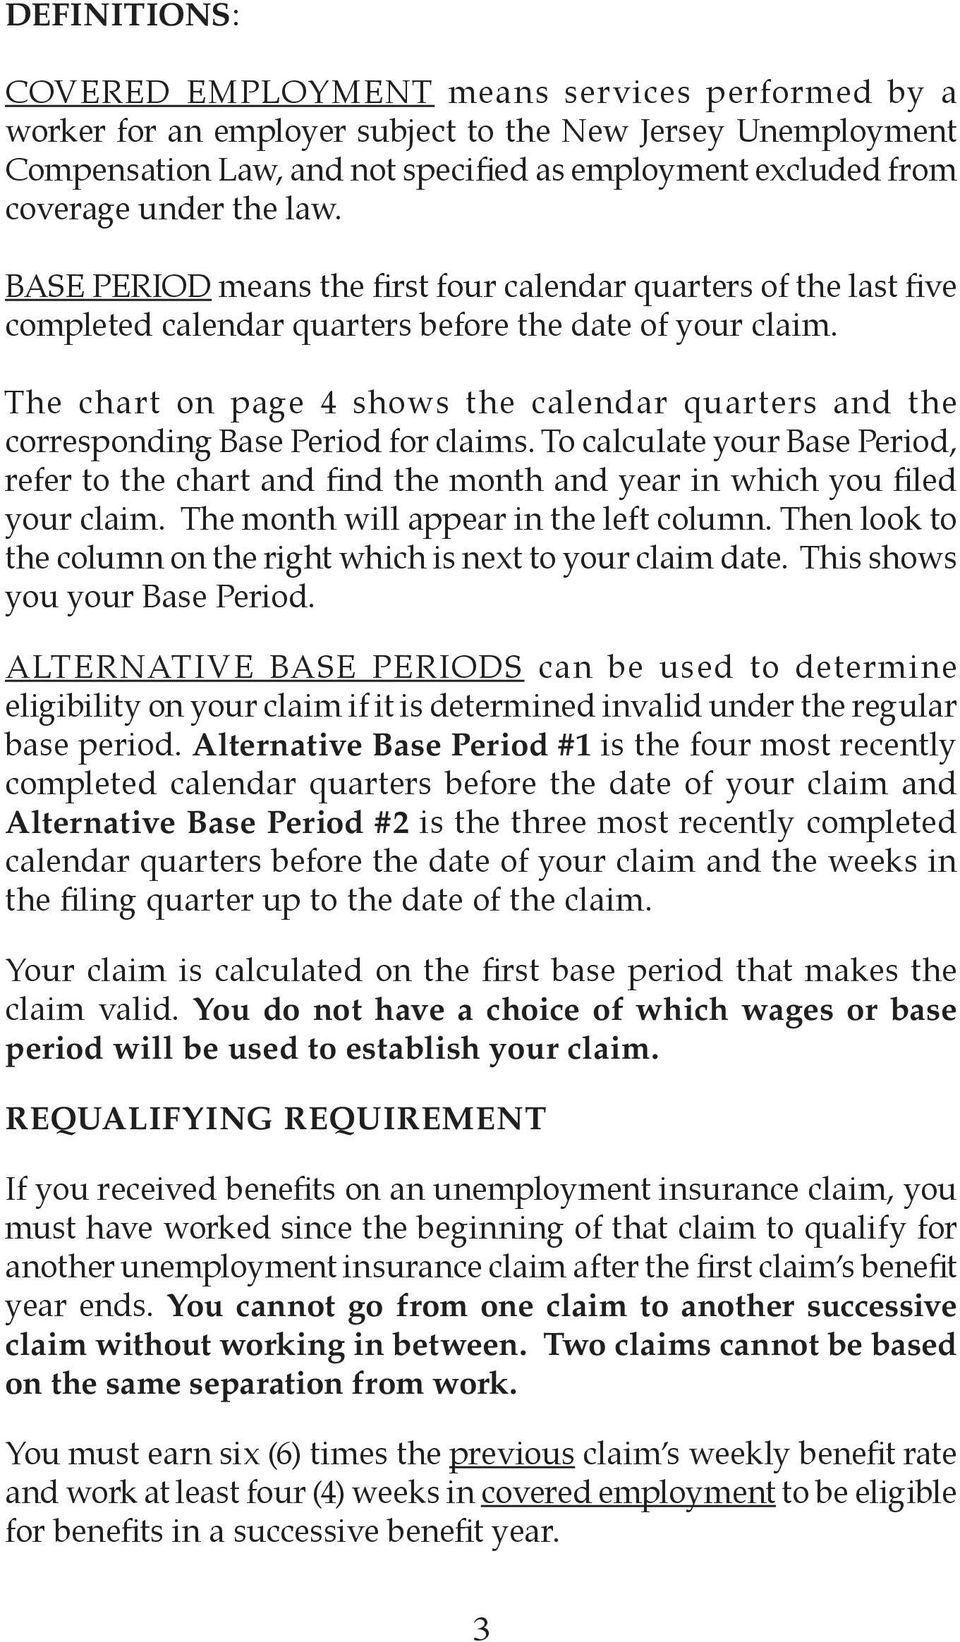 The chart on page 4 shows the calendar quarters and the corresponding Base Period for claims.